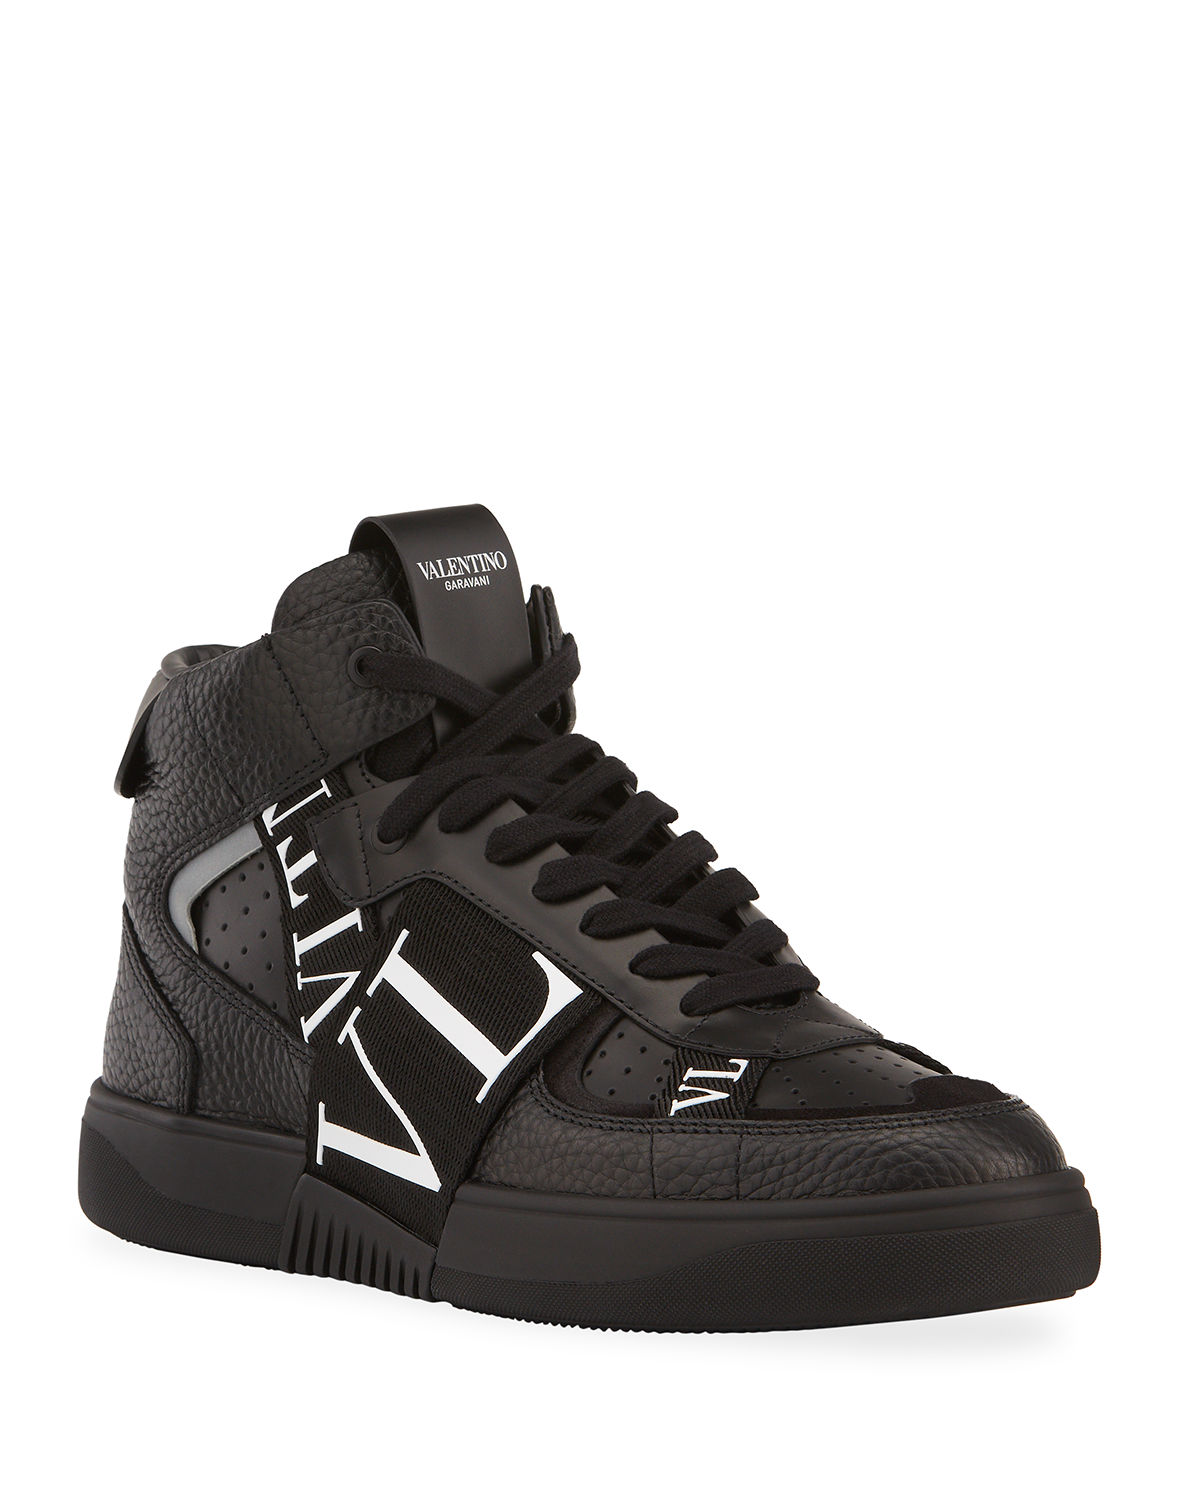 Valentino Leathers MEN'S VL7 WEB LOGO HIGH-TOP SNEAKERS